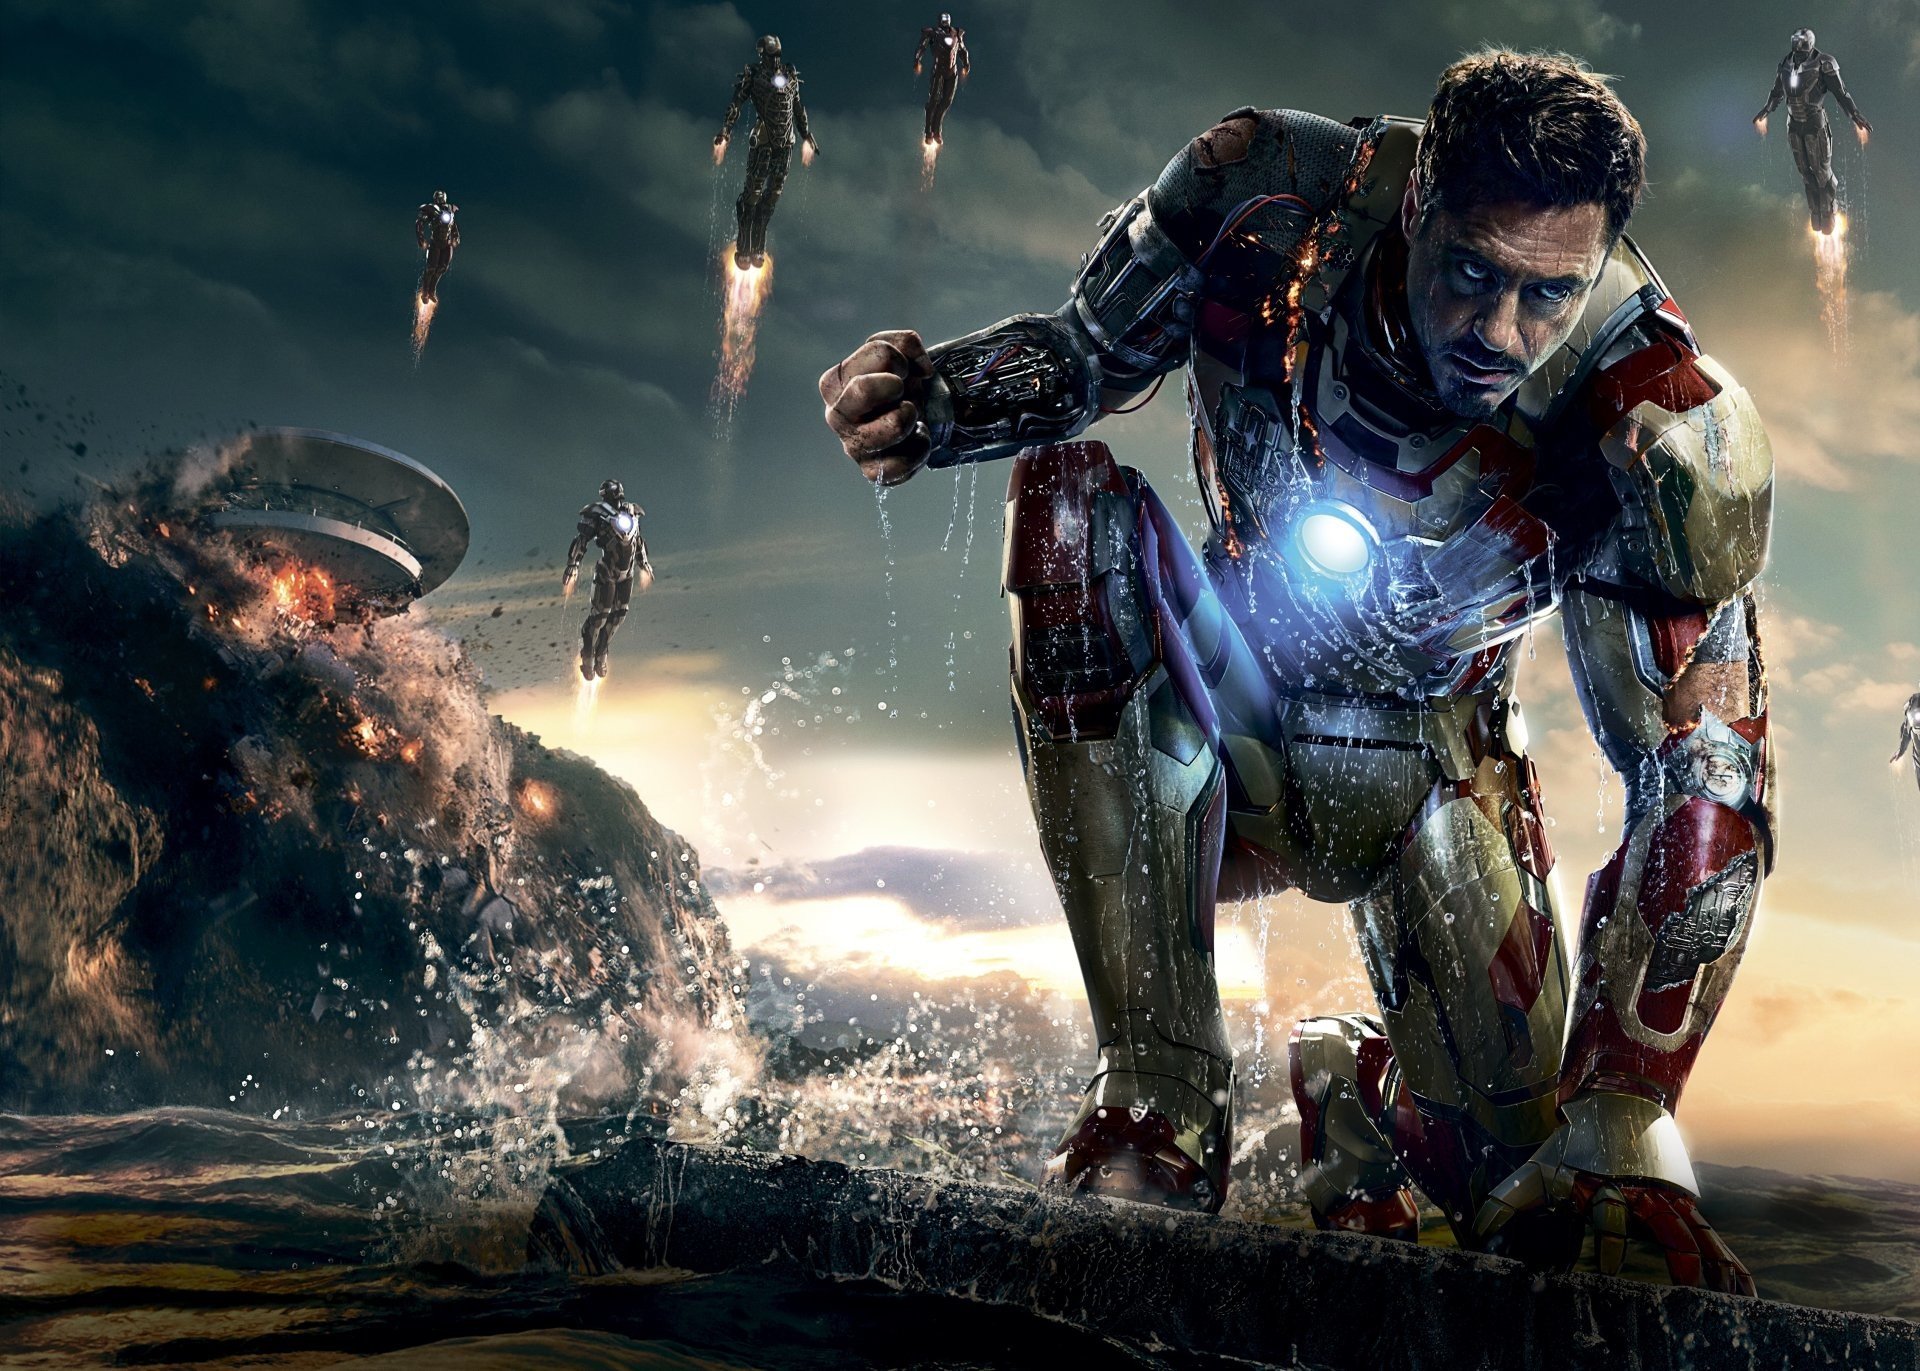 Iron Man 3 Hd Wallpapers High Resolution: HD Wallpapers Iron Man 3 (76+ Background Pictures